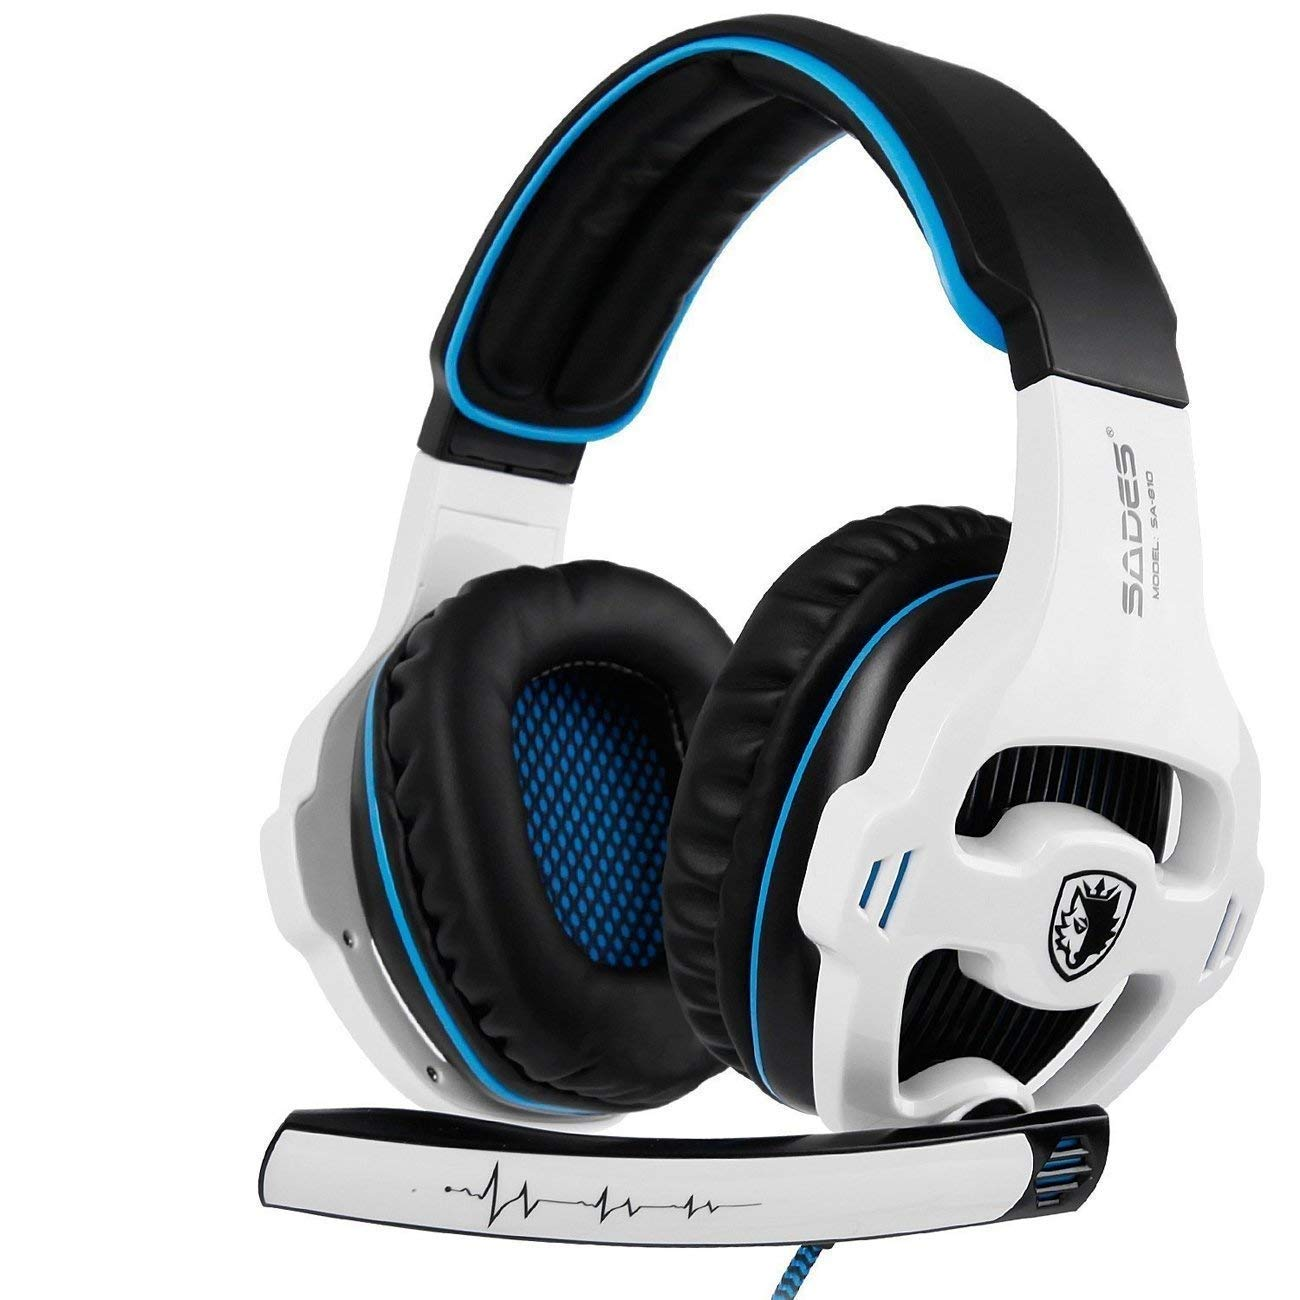 Xbox One Gaming Headset Stereo Over Ear Gaming Headset with Mic Noise Cancelling Volume Control for Xbox One/PC/Mac/PS4/Nintendo(White) by SADES